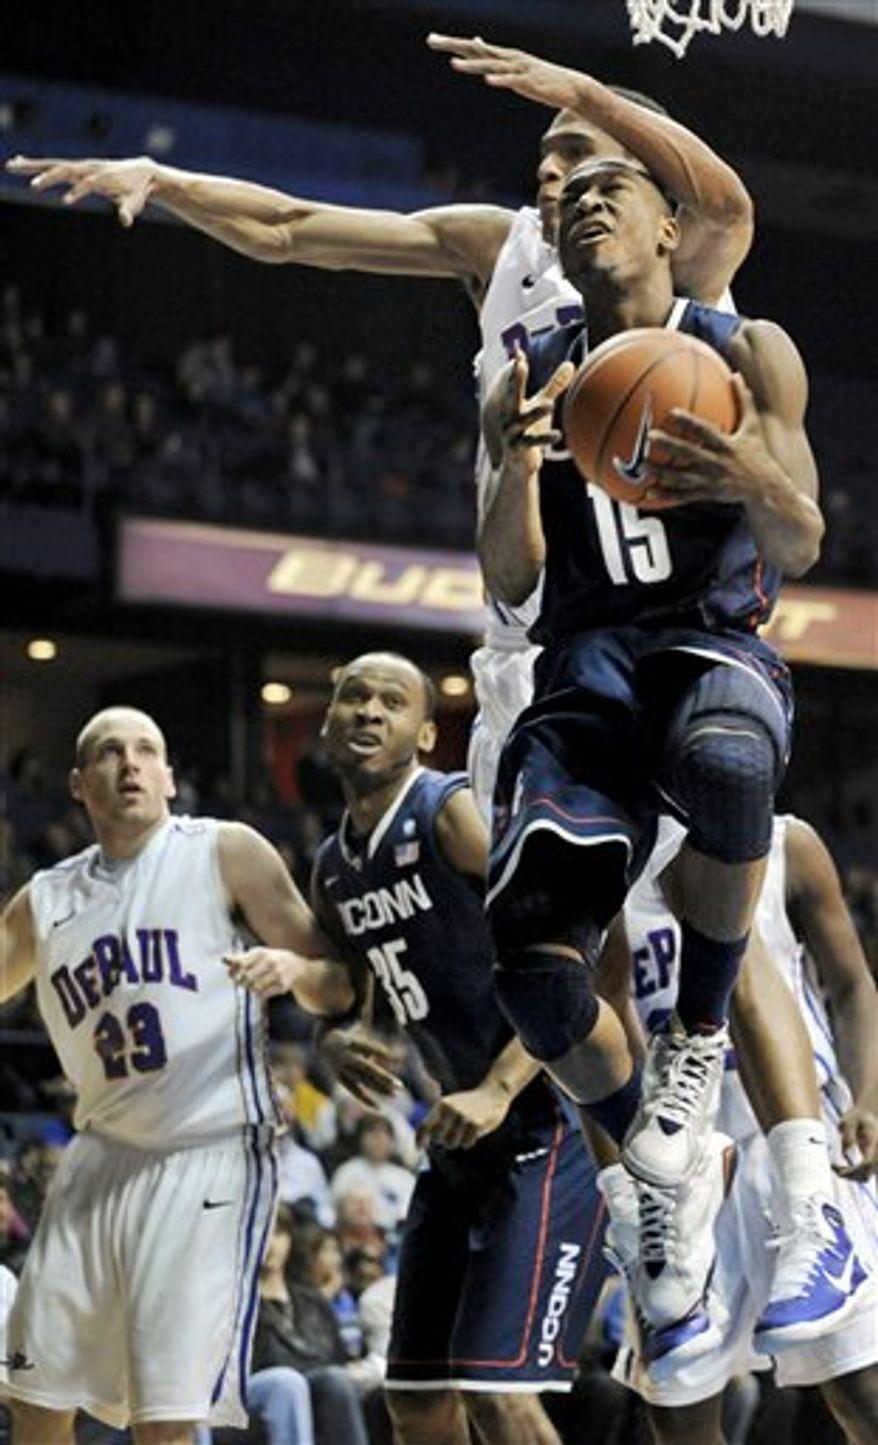 Connecticut's Kemba Walker, foreground, goes up for a shot against DePaul's Cleveland Melvin in the second half during an NCAA college basketball game in Rosemont, Ill., Saturday, Jan. 15, 2011. Connecticut won 82-62. (AP Photo/Paul Beaty)